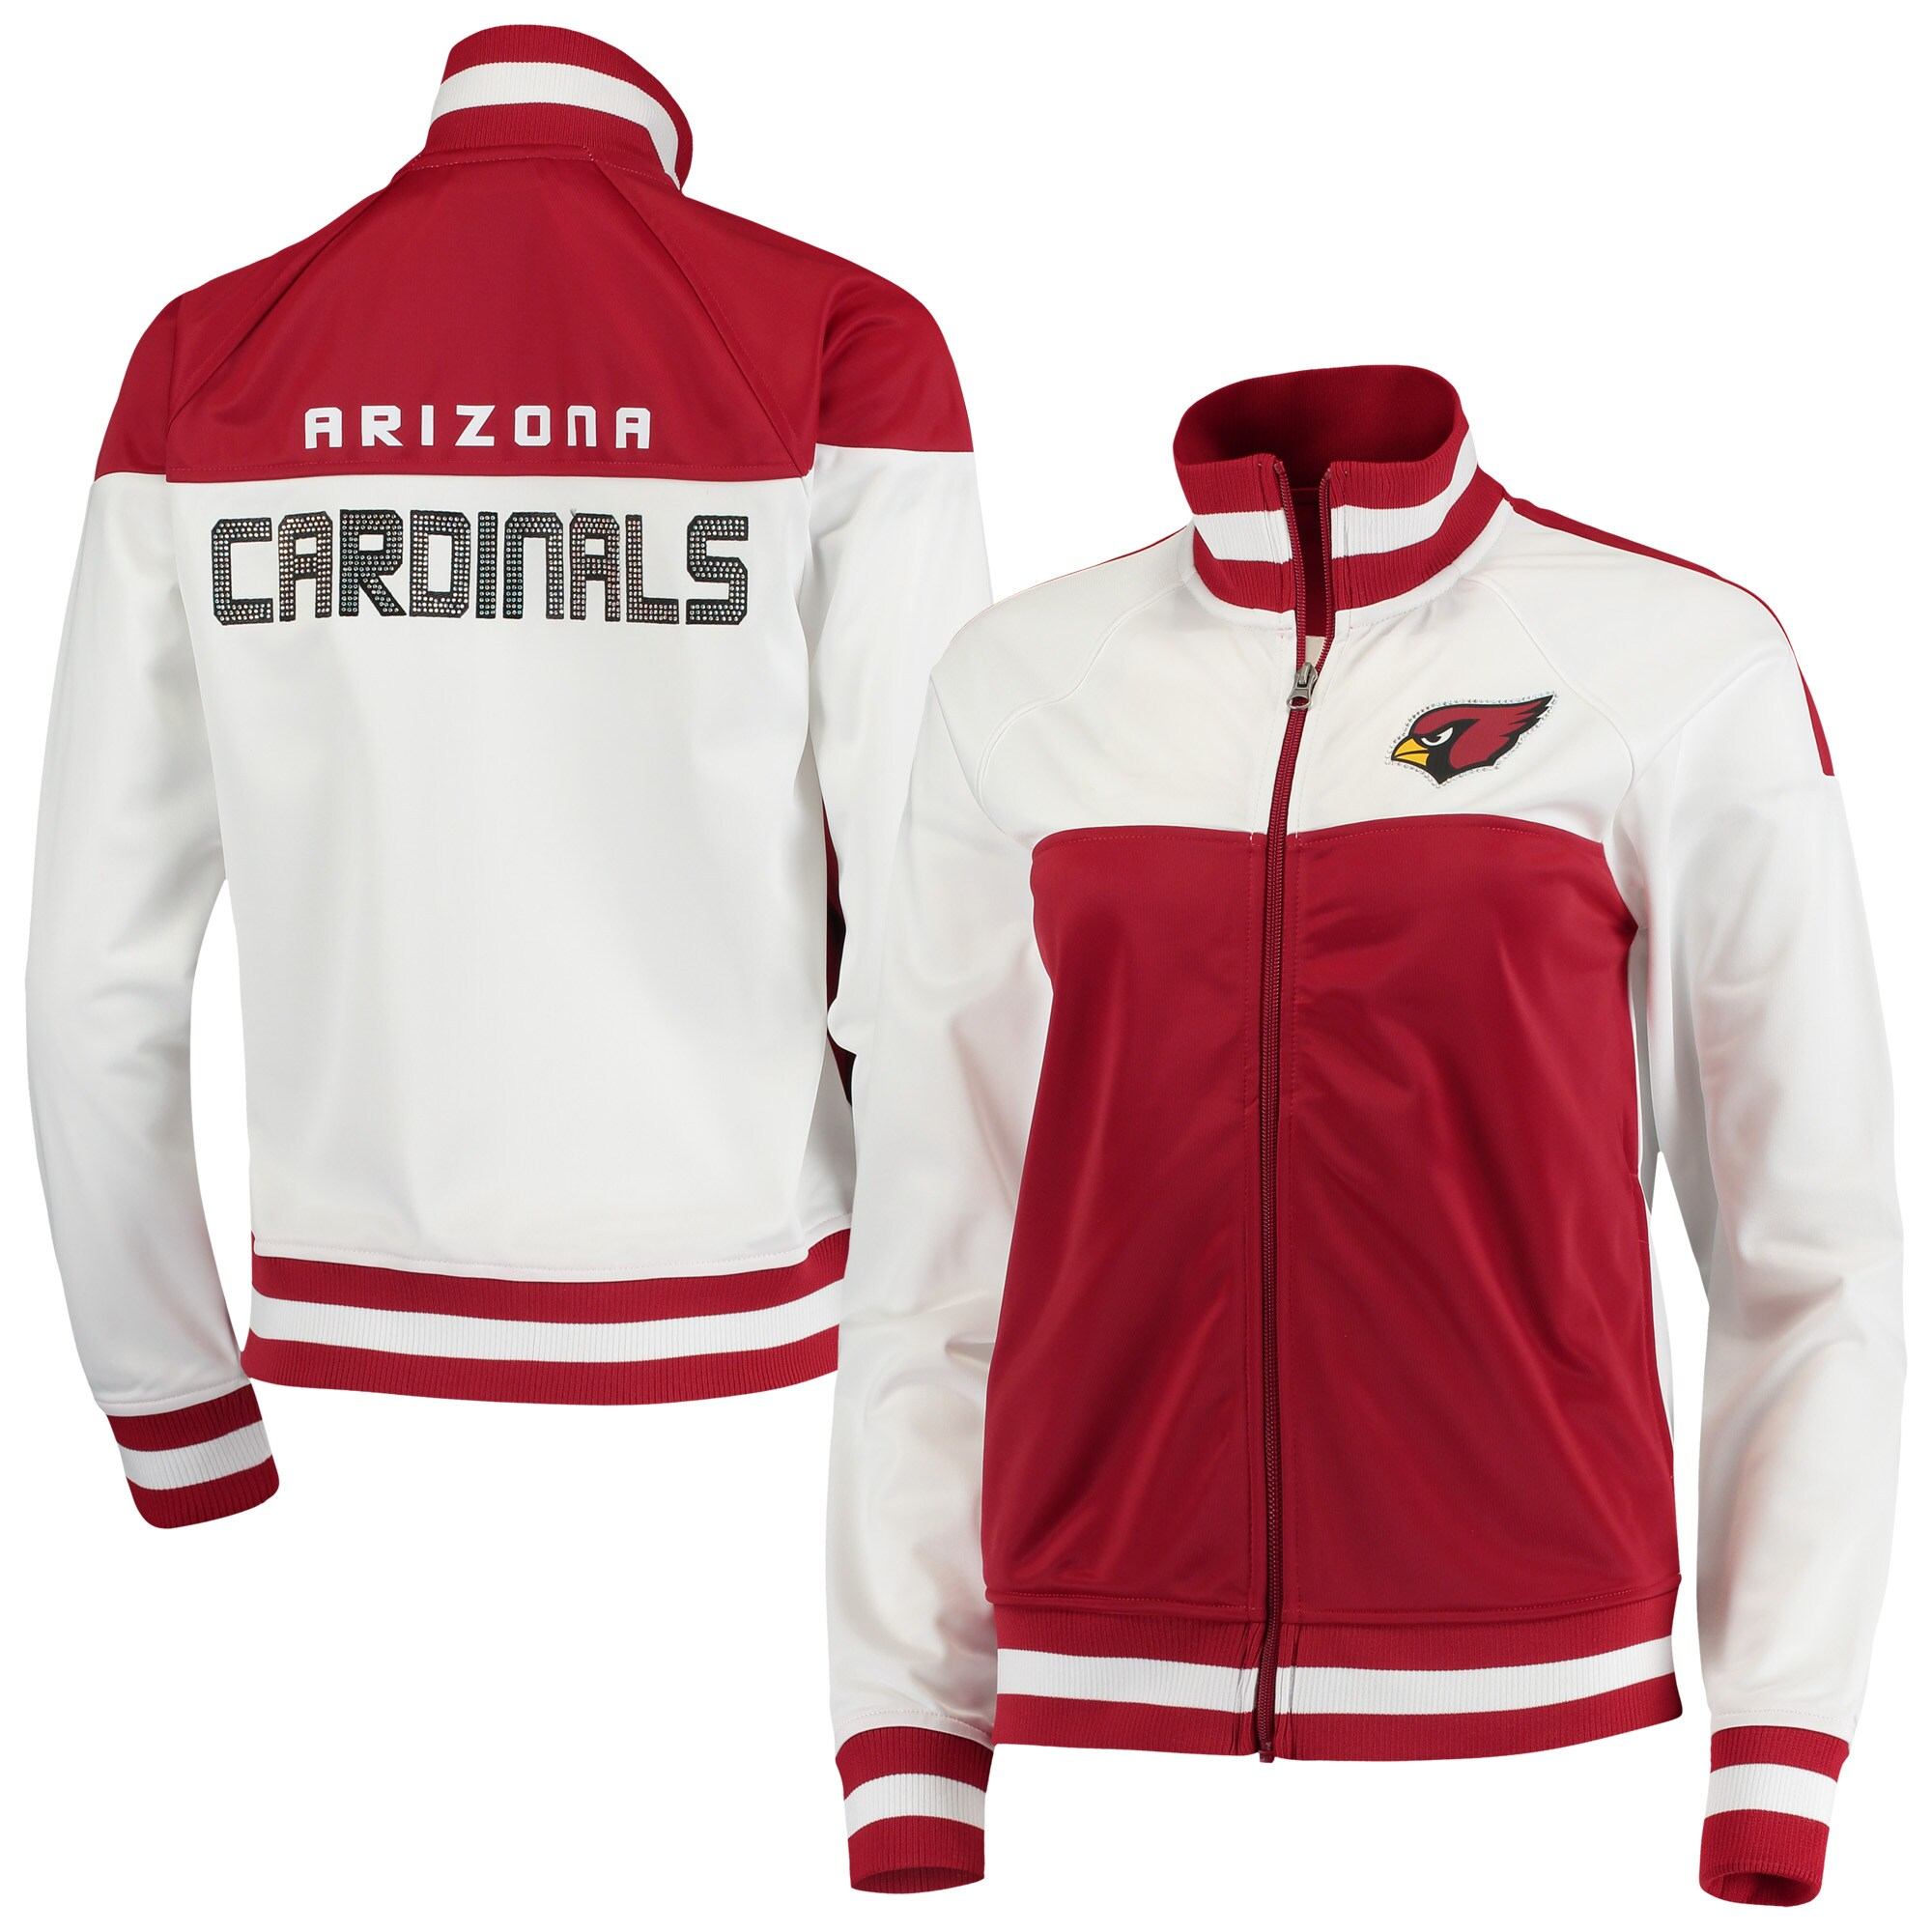 Arizona Cardinals G-III 4Her by Carl Banks Women's Face Off Raglan Full-Zip Track Jacket - White/Cardinal